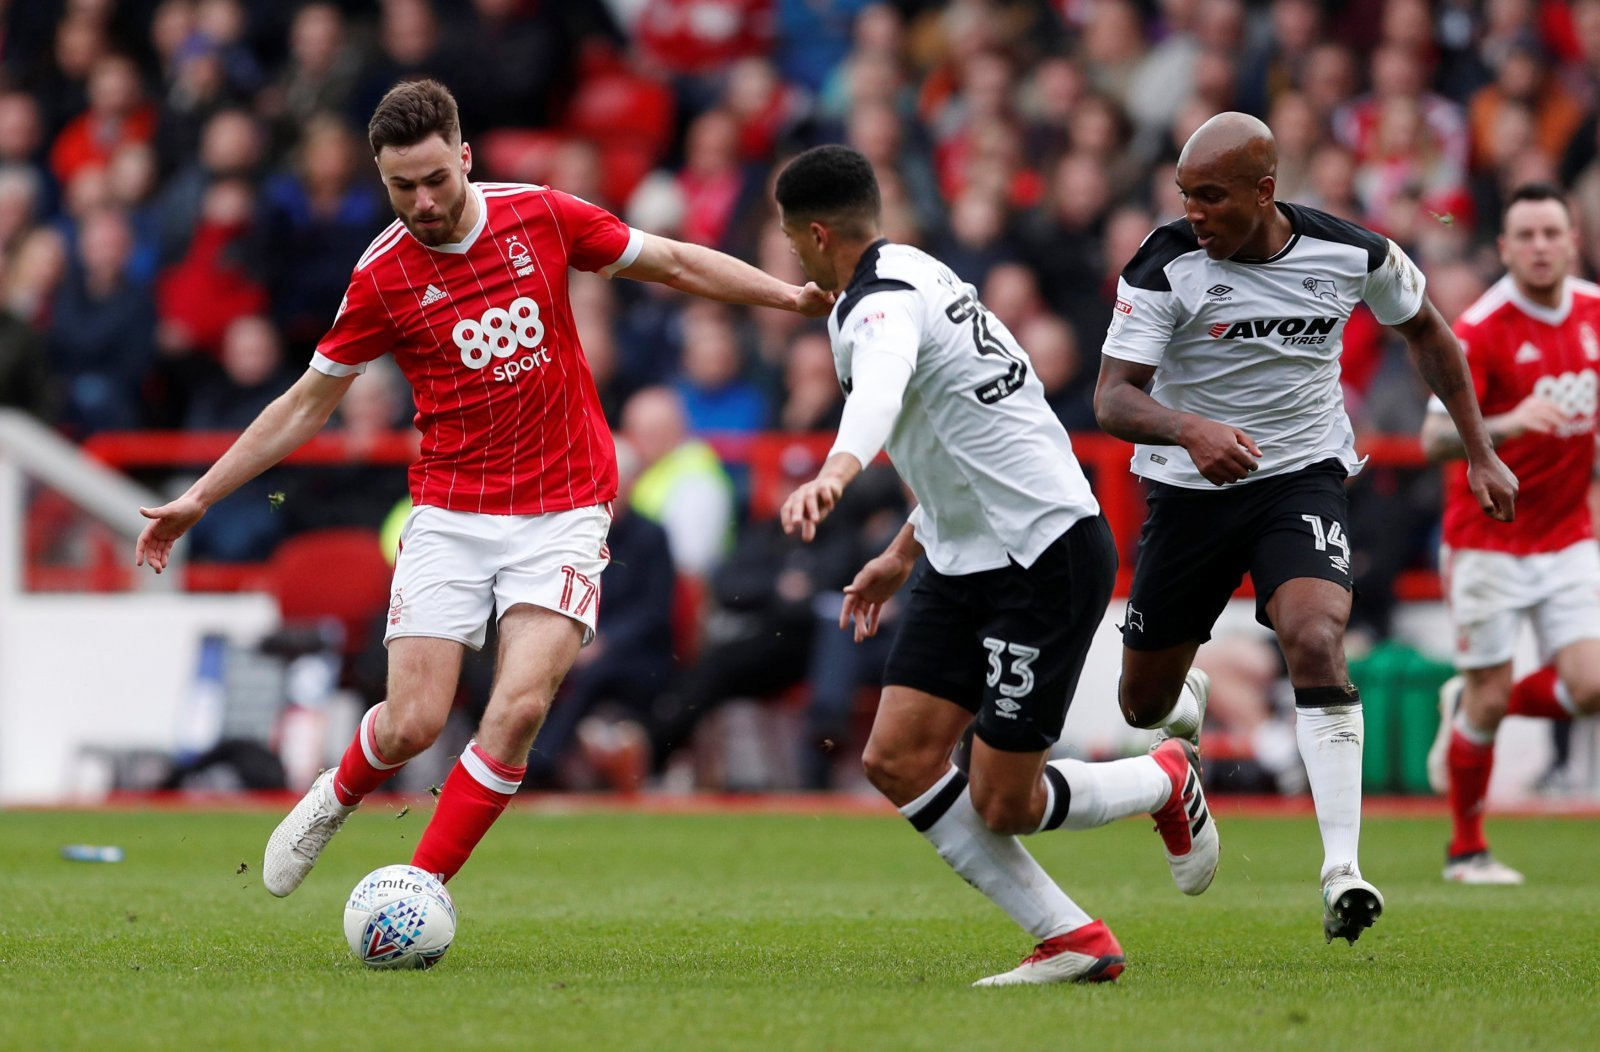 Nottingham Forest will sell Brereton for right price